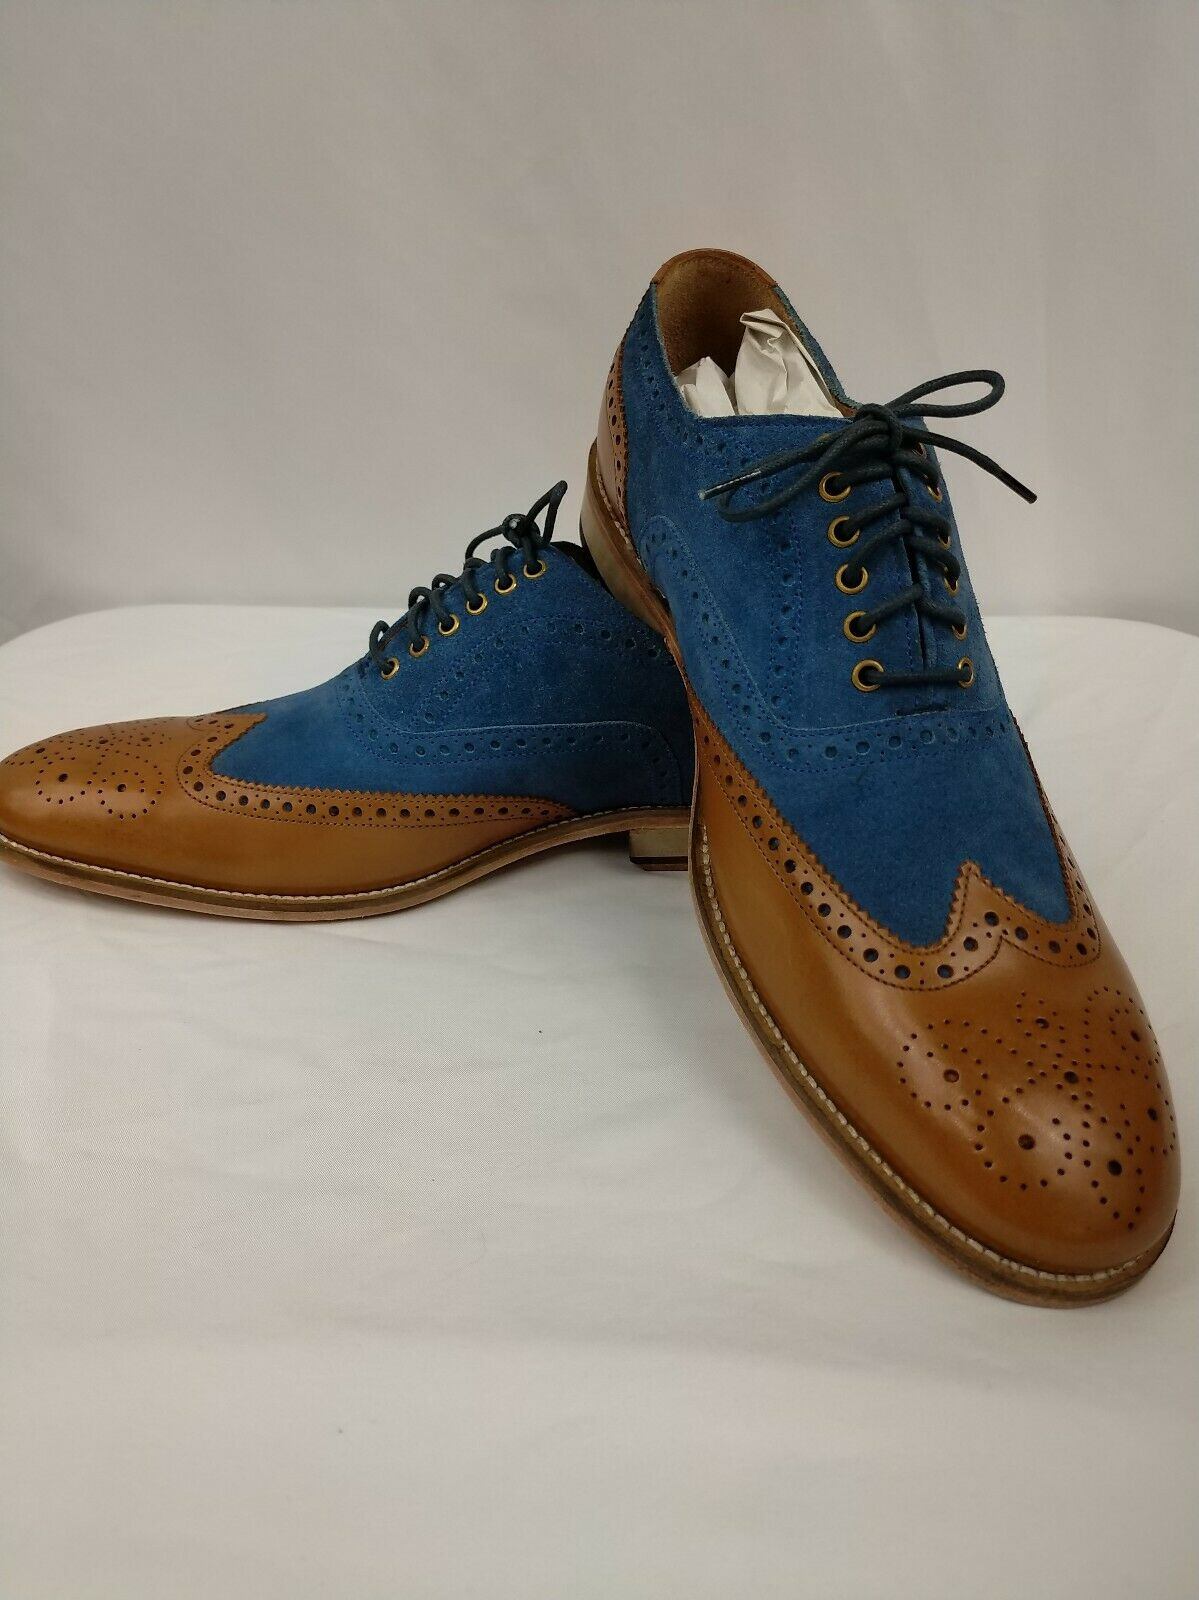 3dm Lifestyle Suede Combination Oxford Navy bluee and Tan Calf Skin Dress shoes